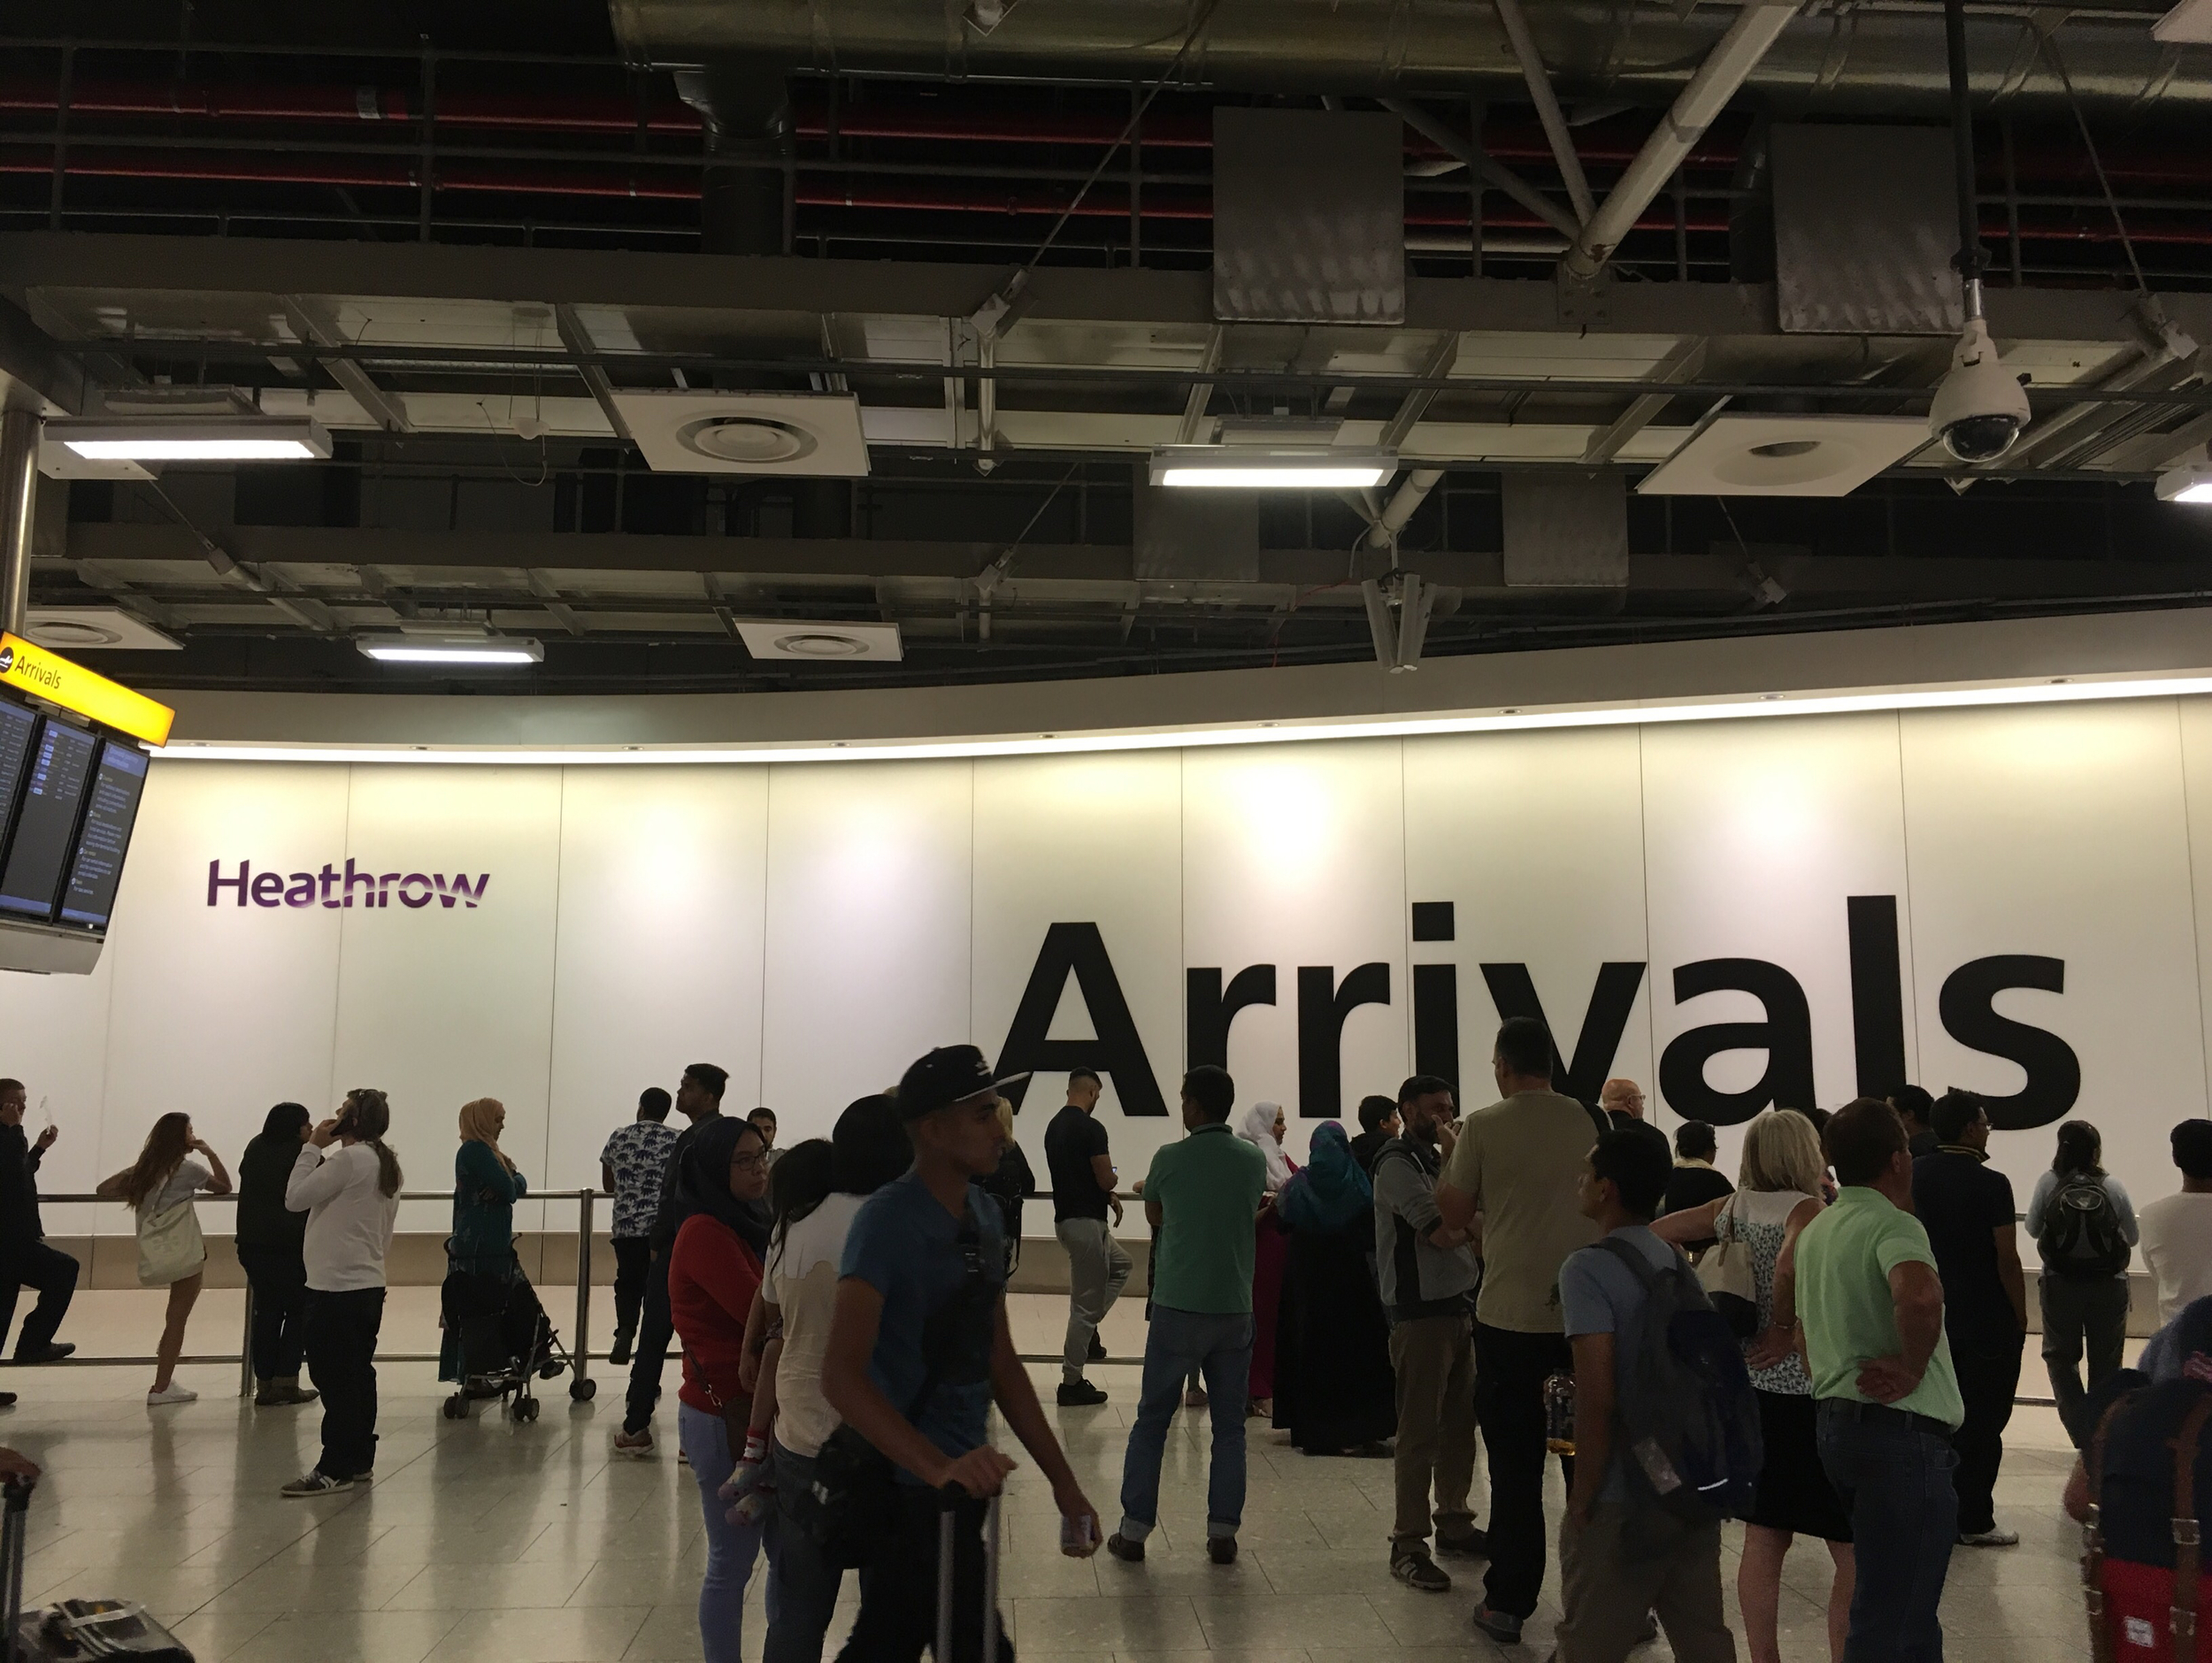 Arrival Section of Heathrow Airport